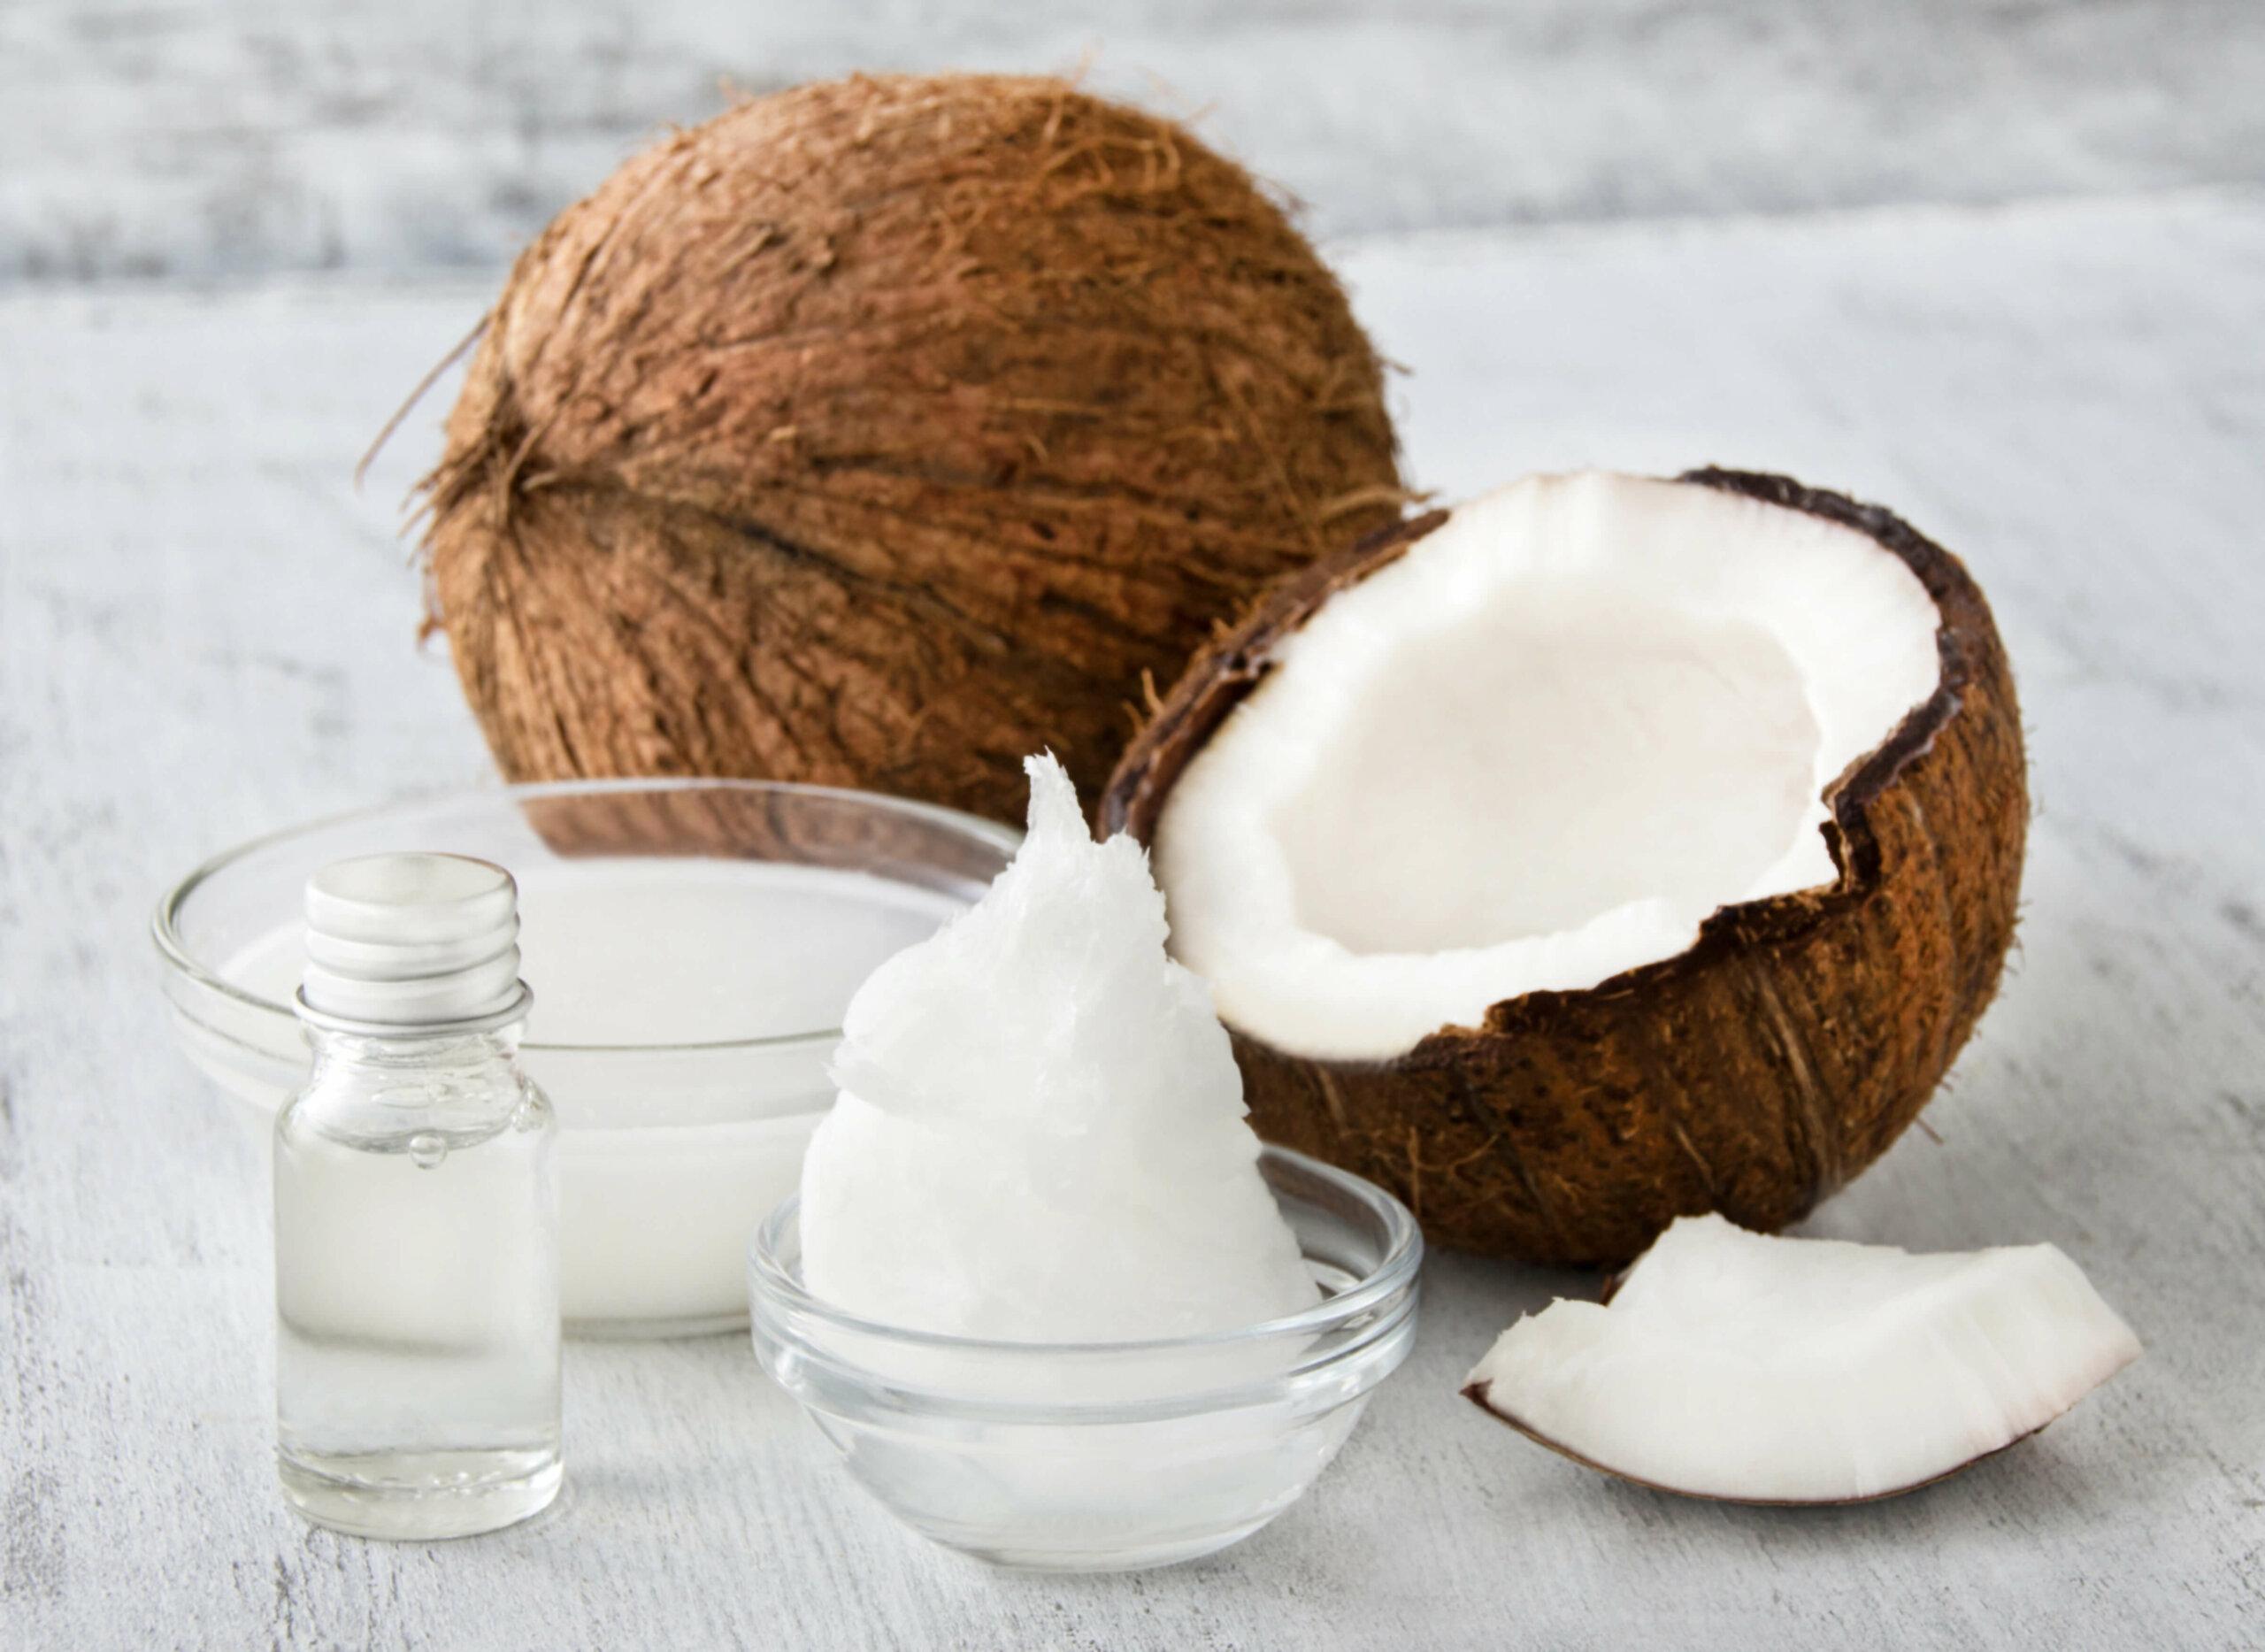 A coconut and halved coconut alongside coconut oil and coconut butter